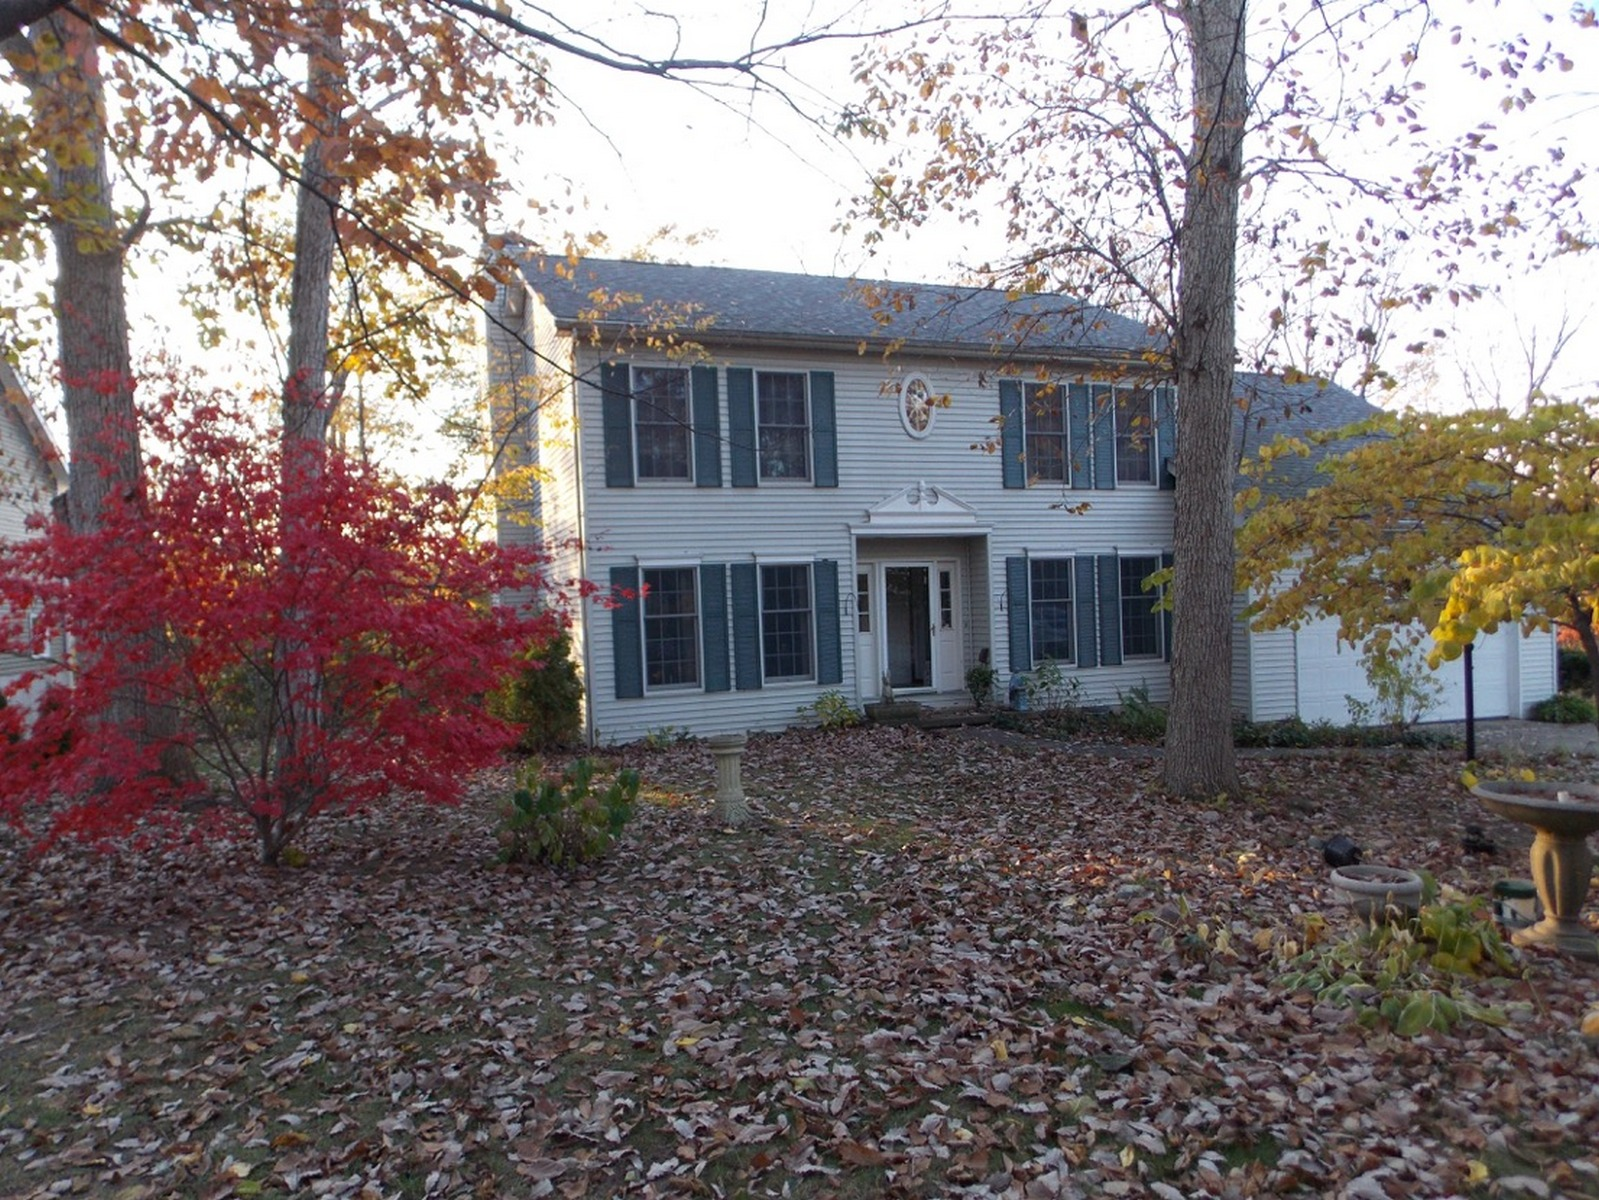 Single Family Home for Sale at 76 N Woodwinds Way Marblehead, Ohio 43440 United States